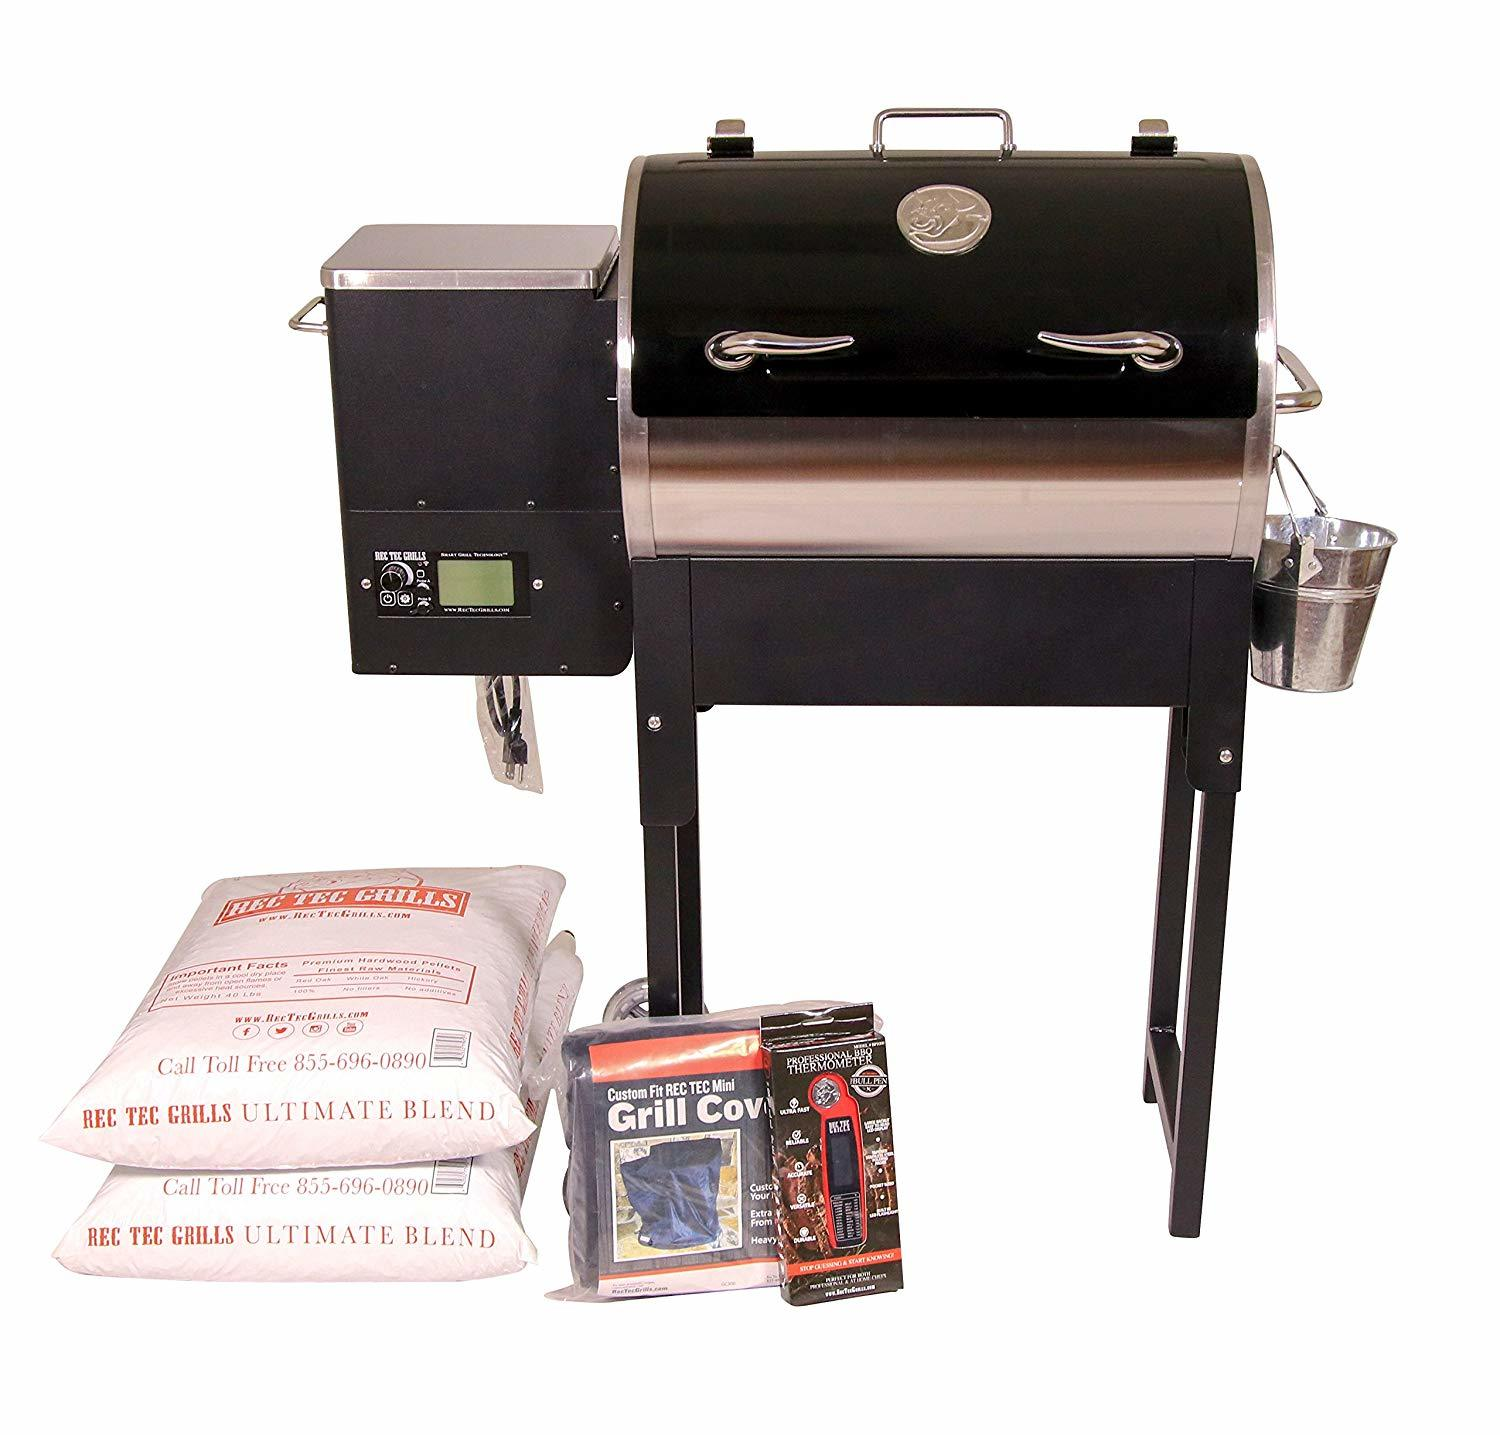 REC TEC Grills Trailblazer RT-340 Wood Pellet Grill Review